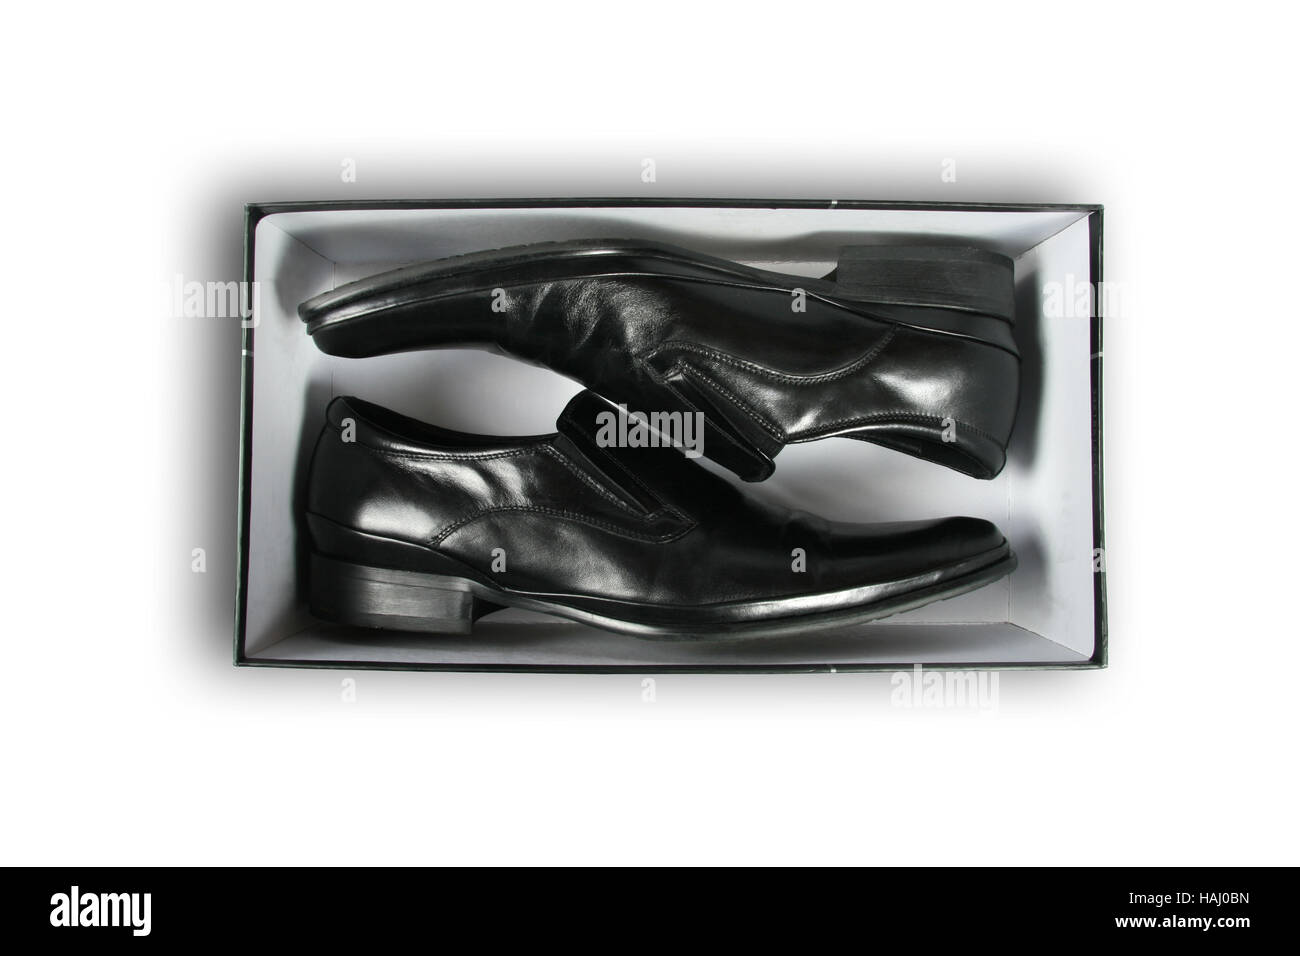 Pair of black leather shoes inside a box - Stock Image